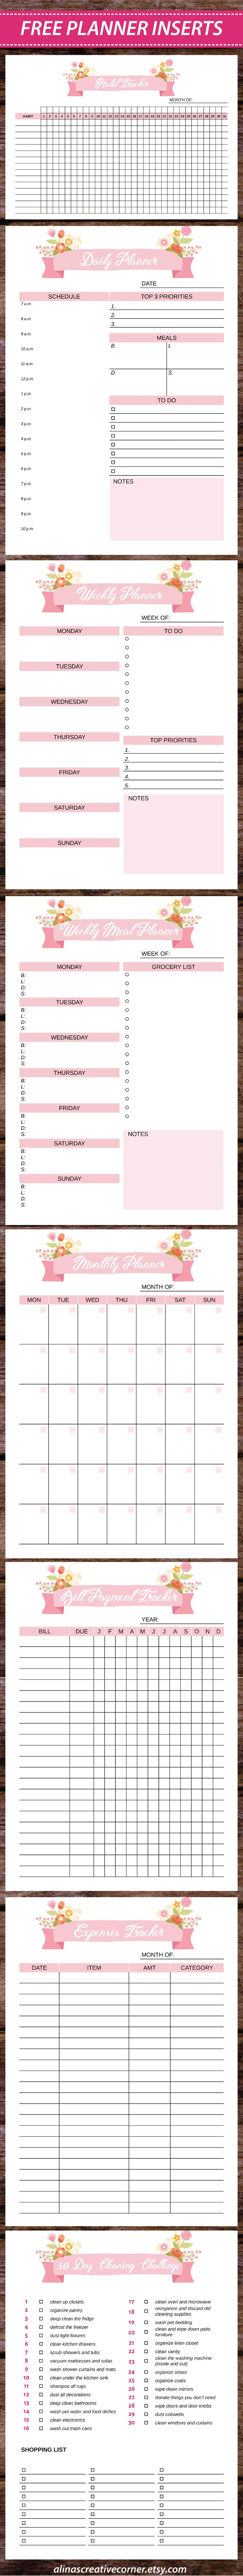 Free Planner Printables {newsletter subscription required}